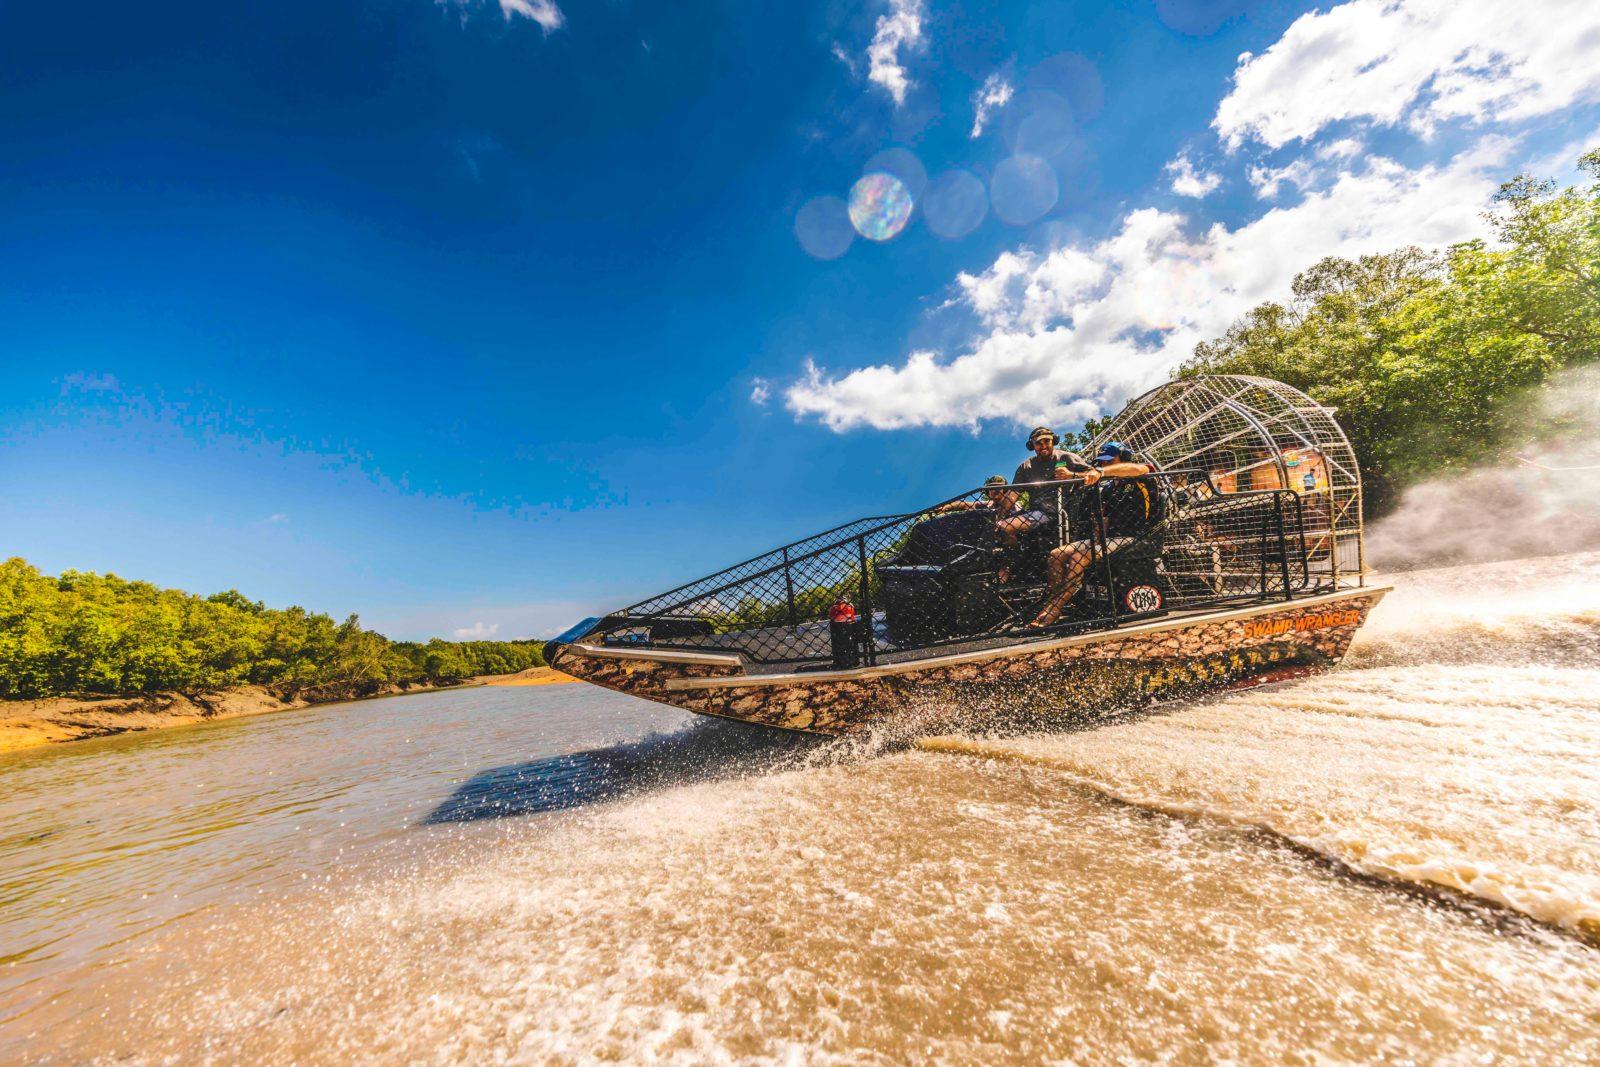 Experience the thrill of an airboat ride!